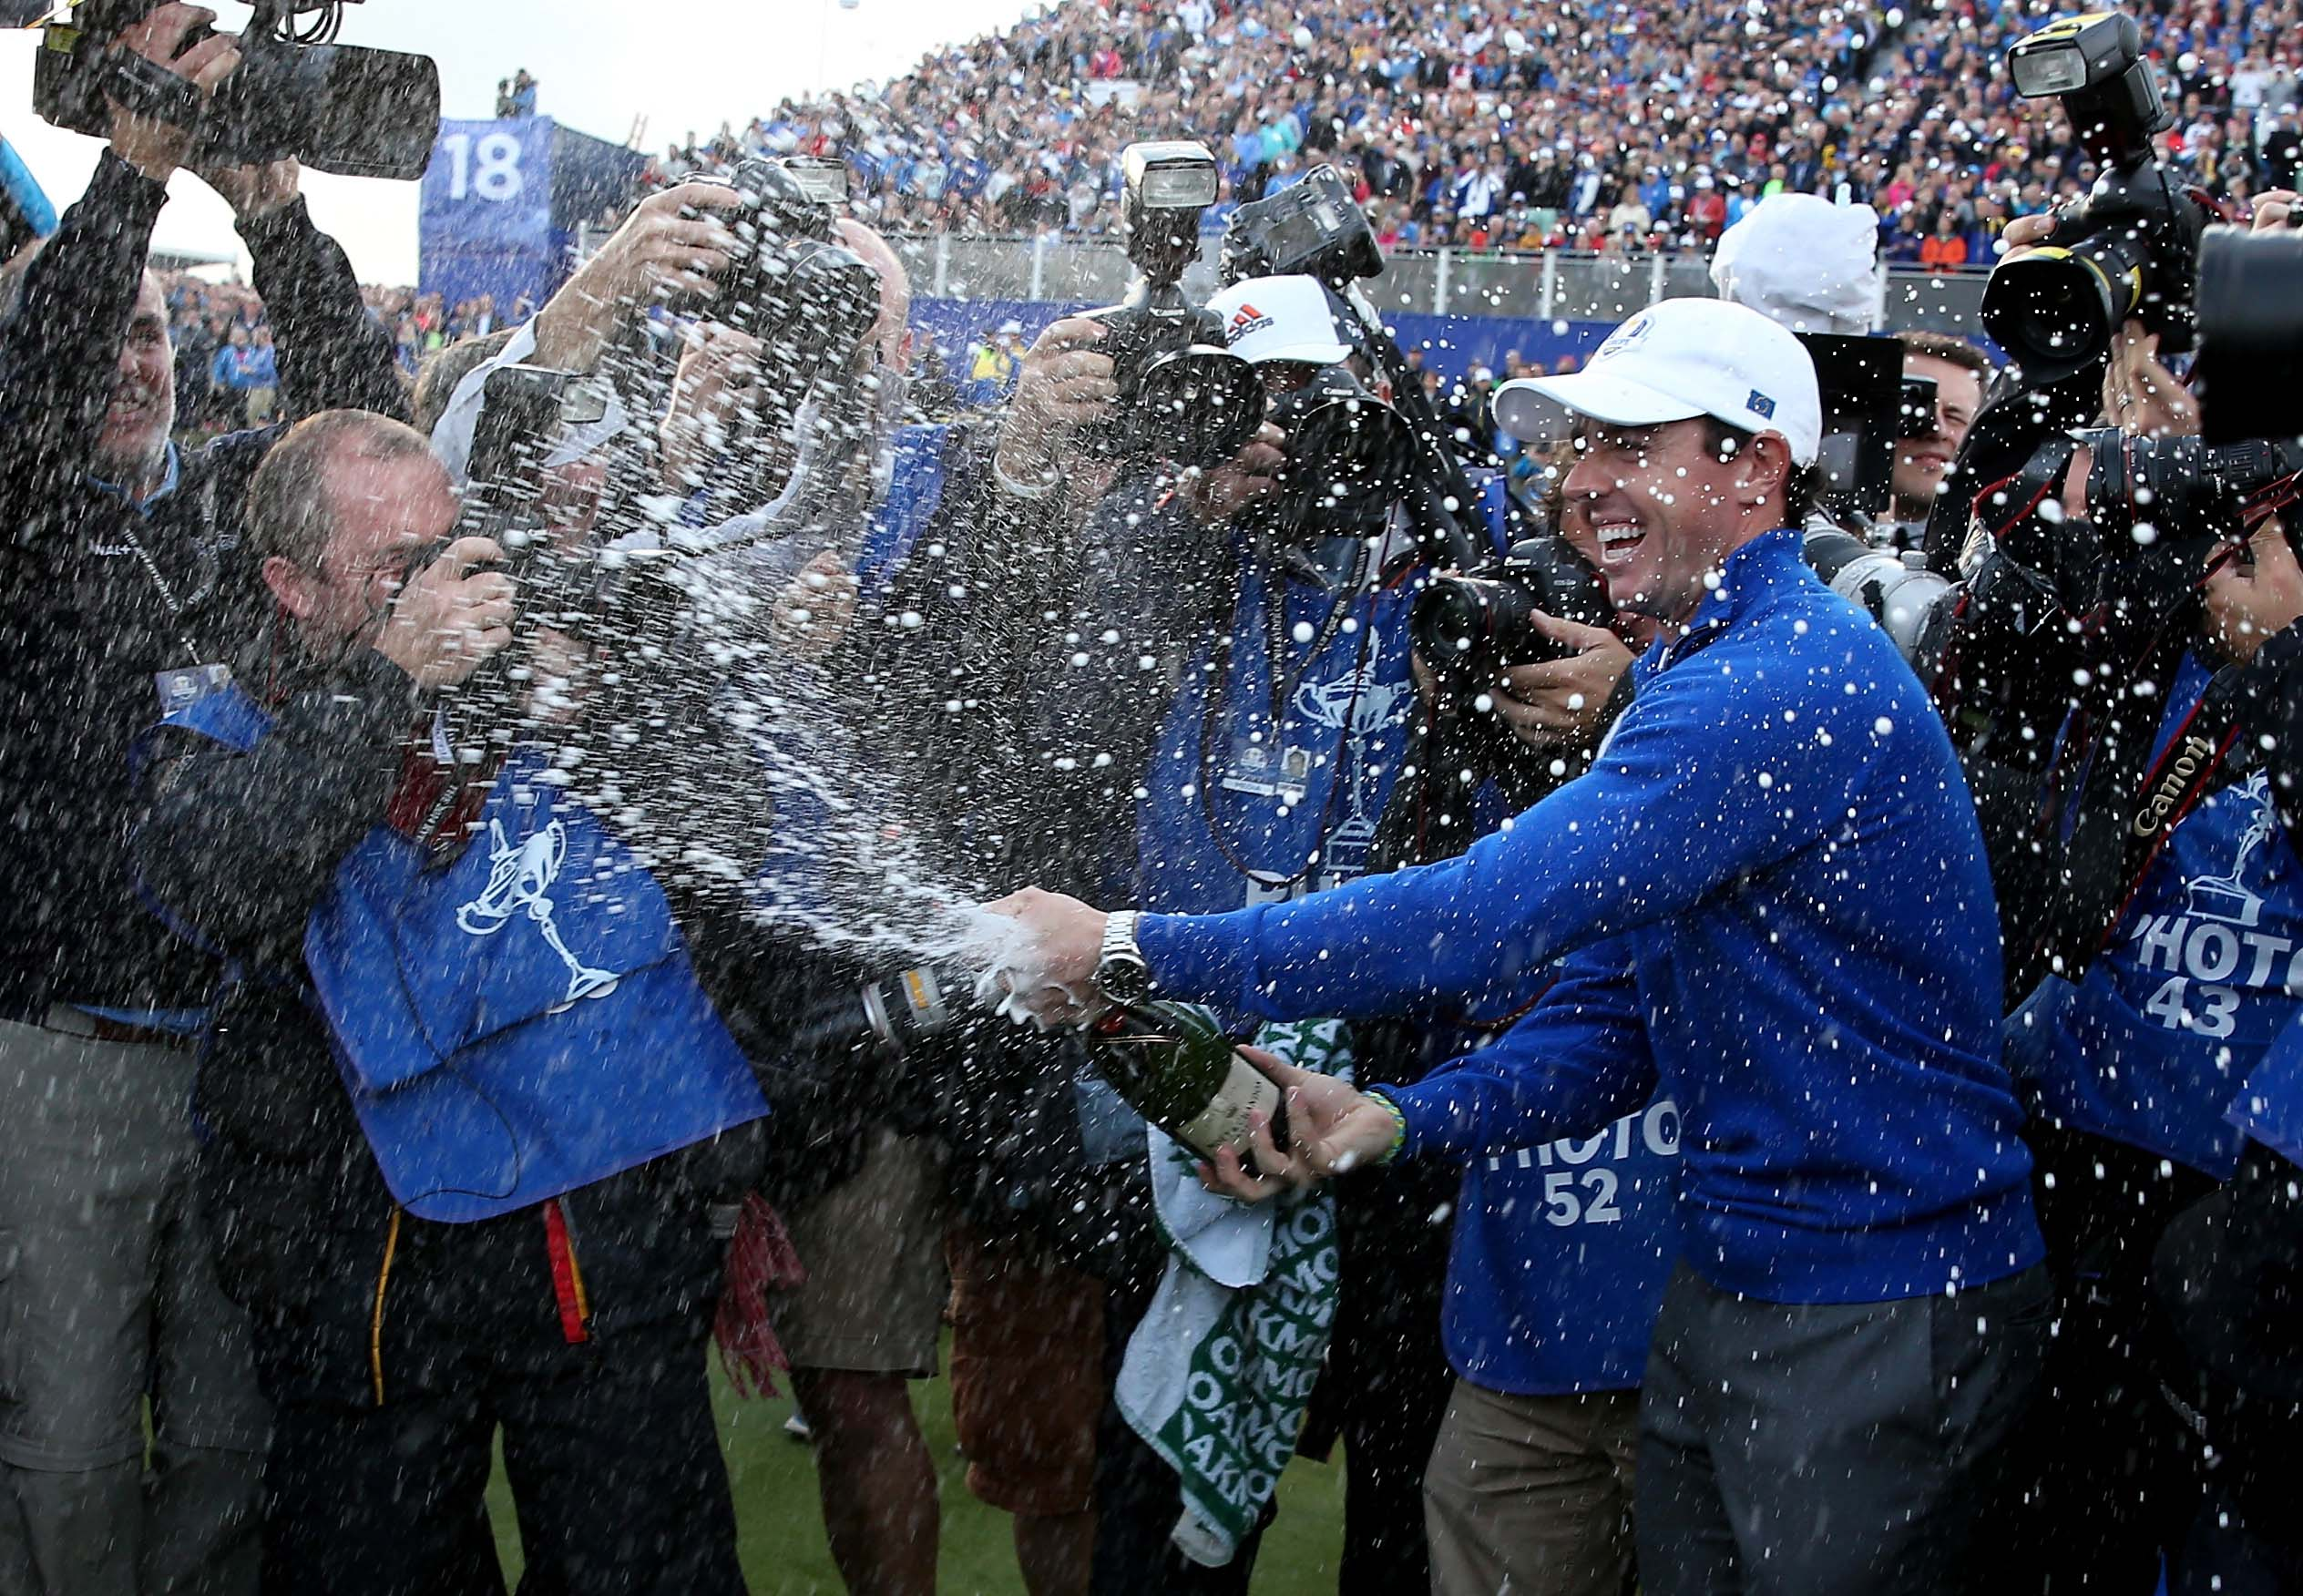 Rory McIlroy at the 2014 Ryder Cup